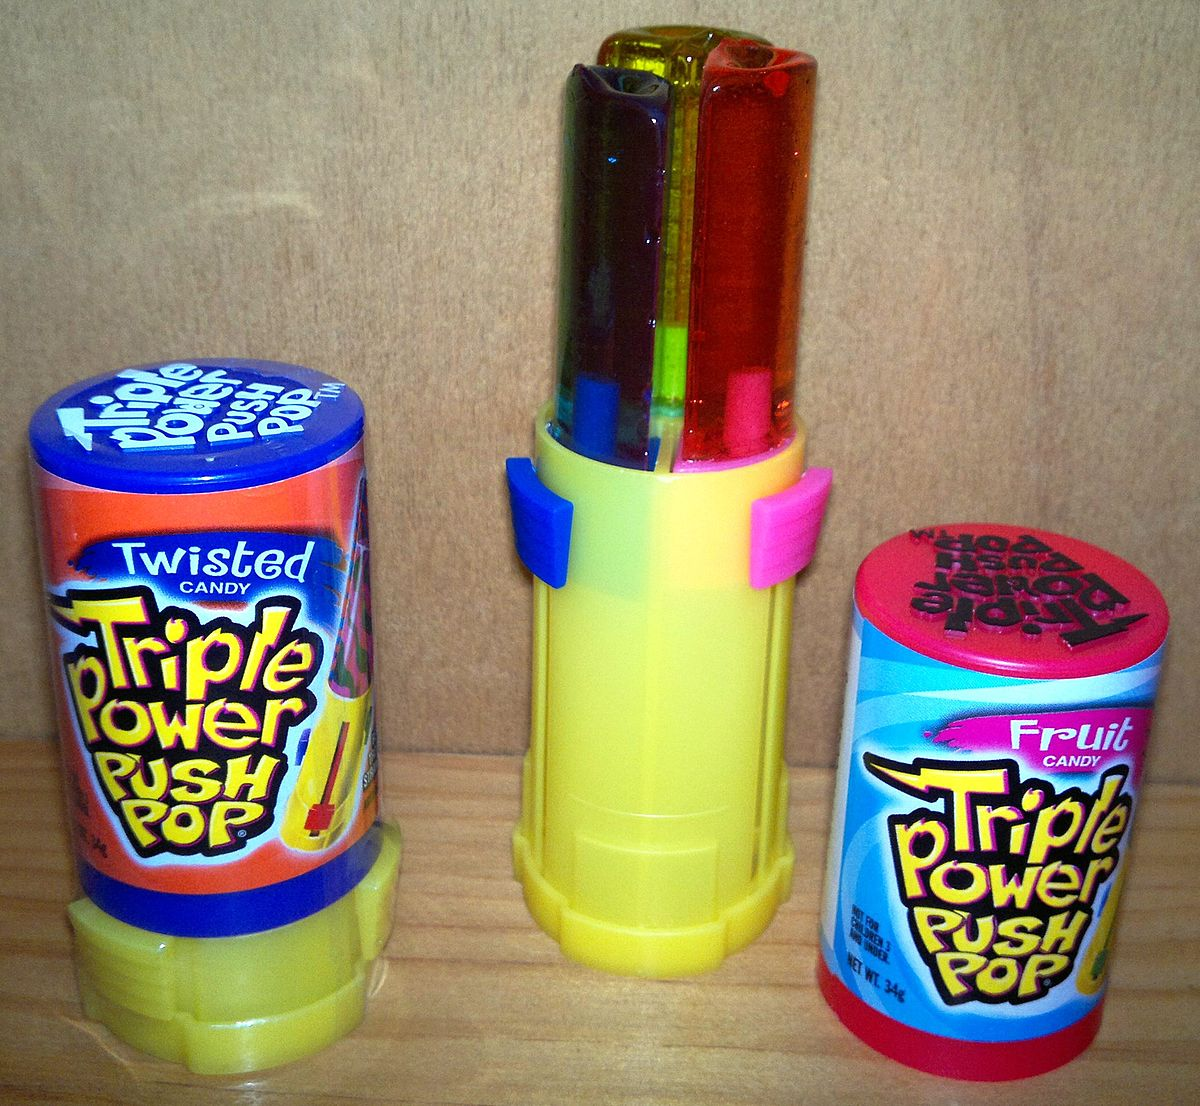 c4a44a010 Push Pop - Wikipedia